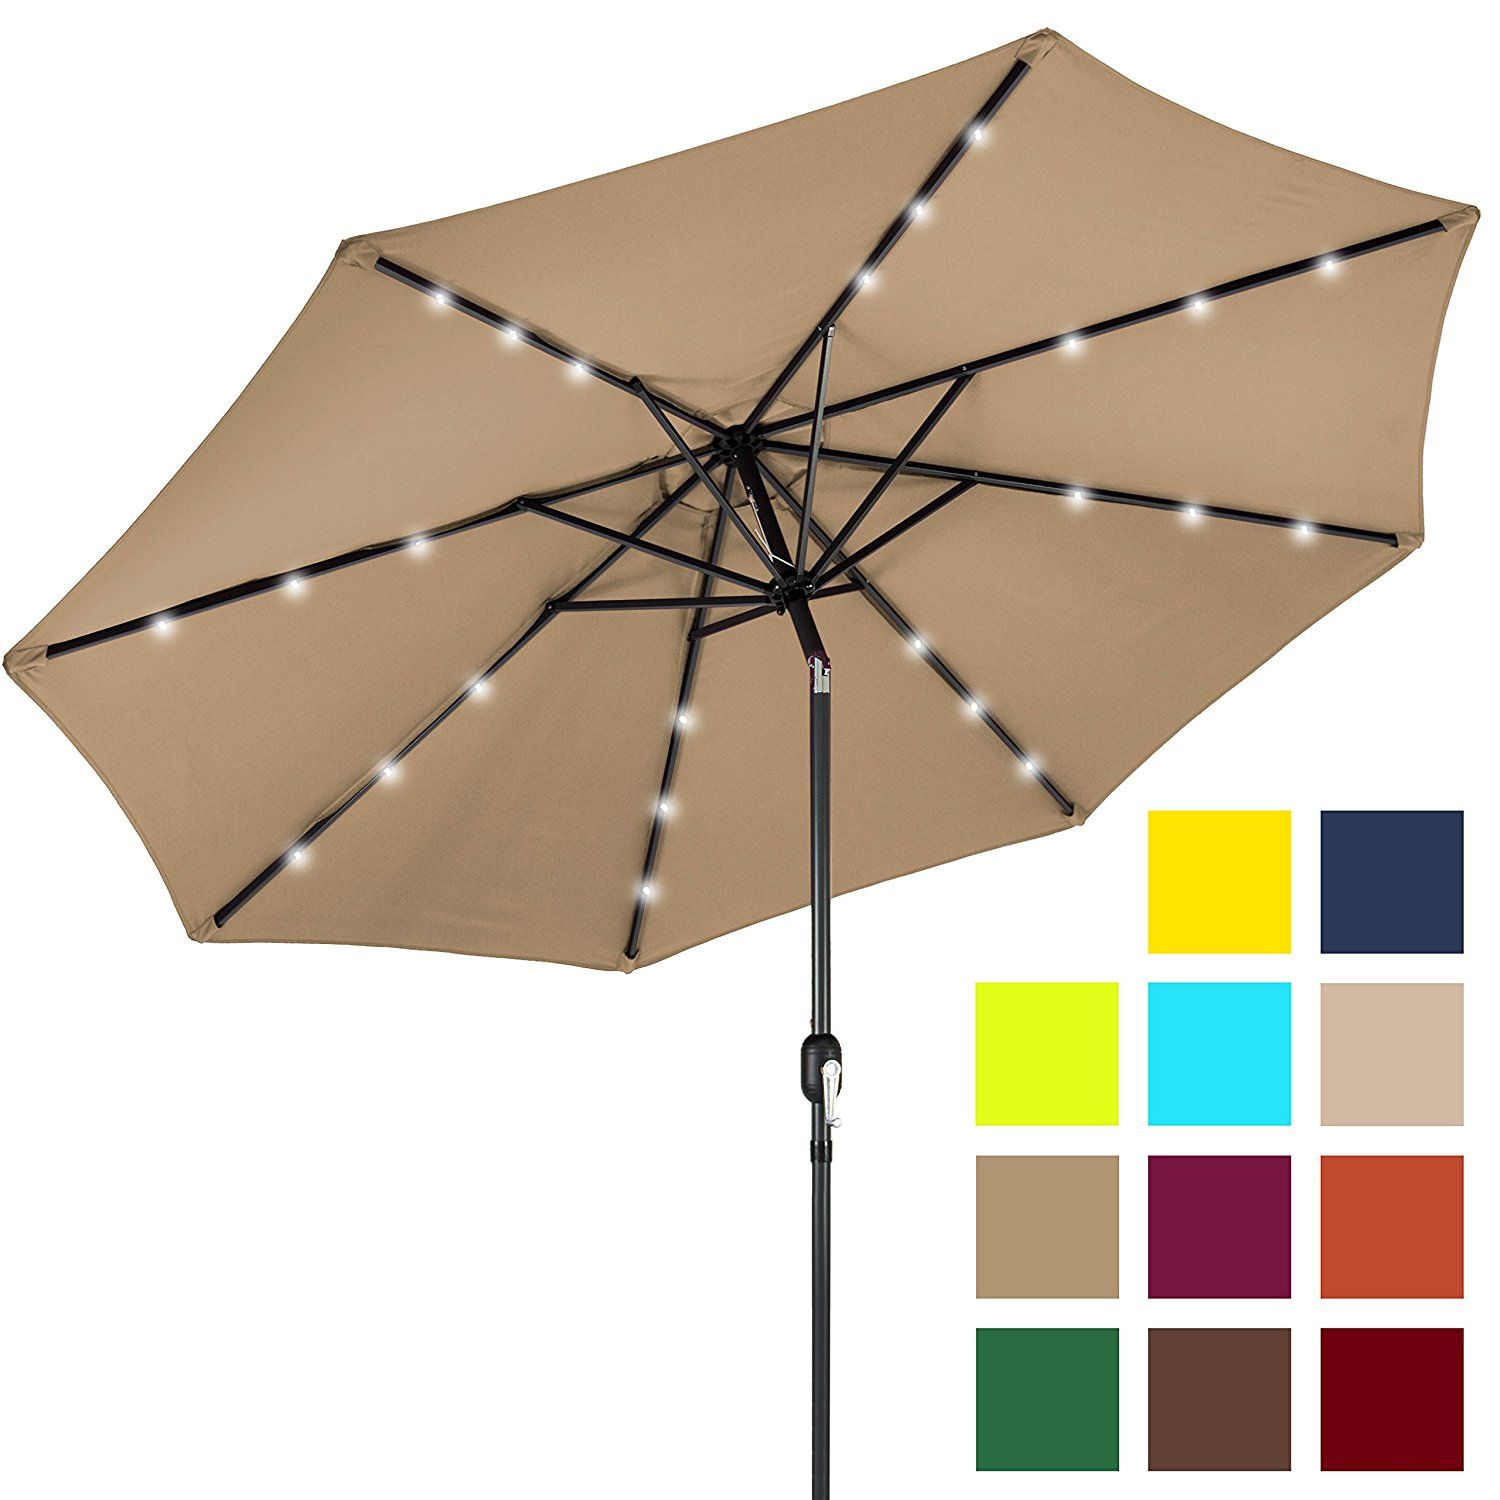 7 Best Choice Products Deluxe Patio Umbrella With Solar Led Lights